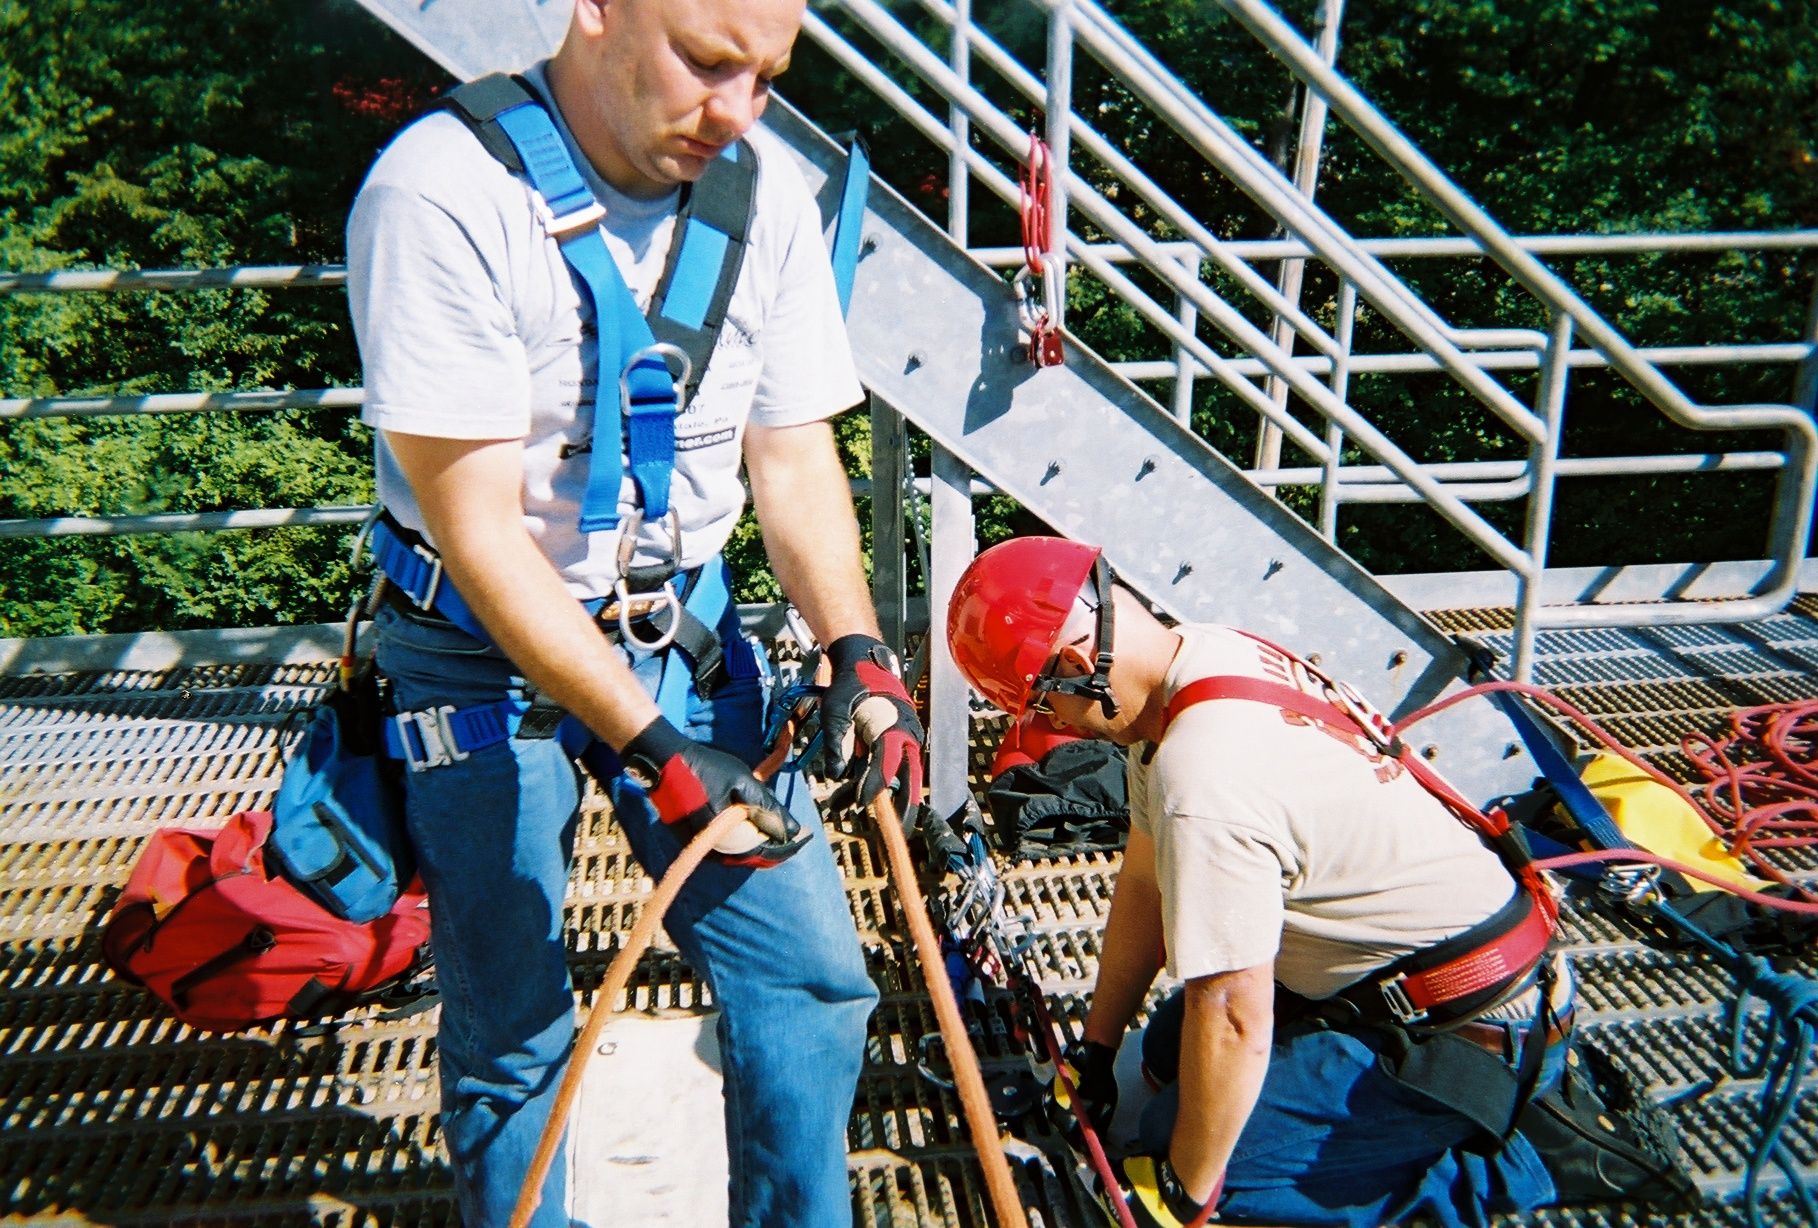 River Rescue Course and Training - Rescue3 Certification